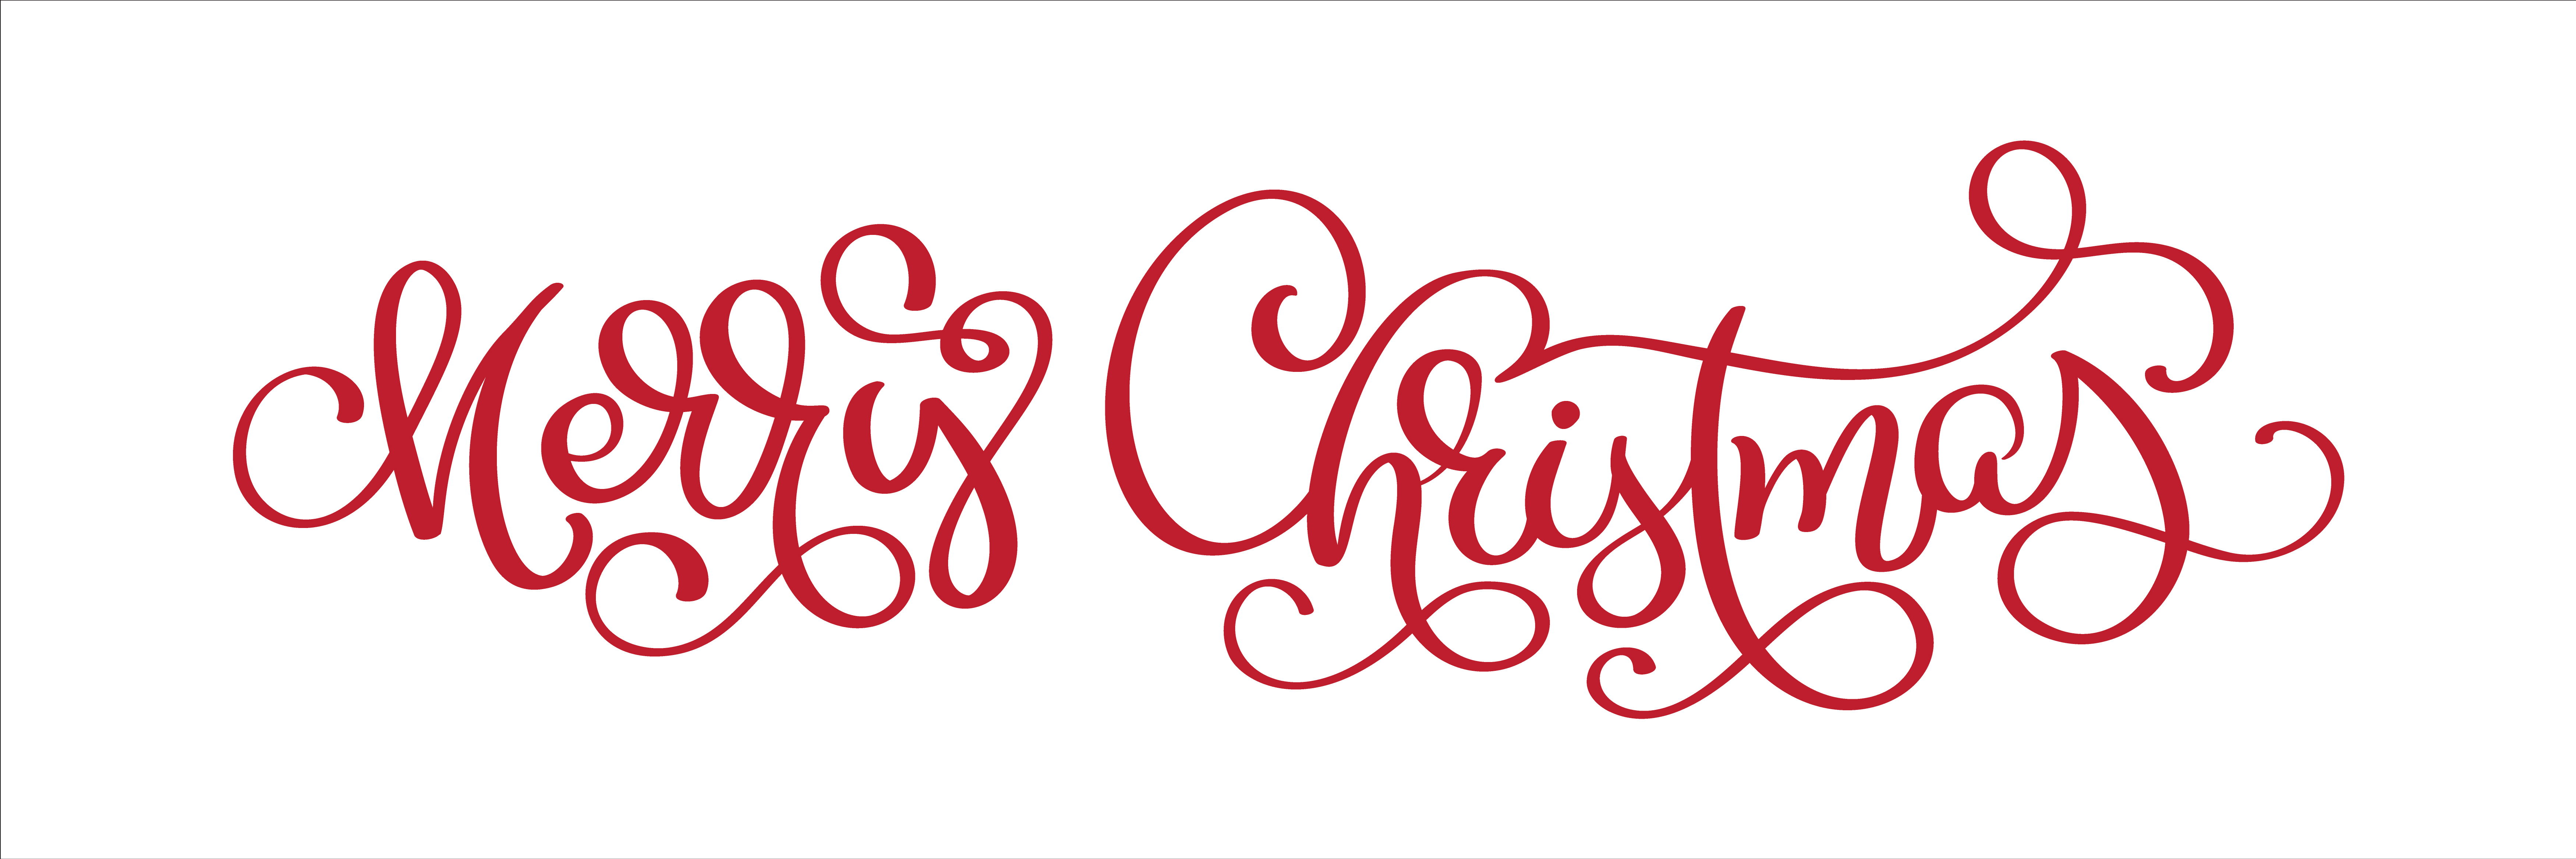 hand lettering merry christmas vector text calligraphic